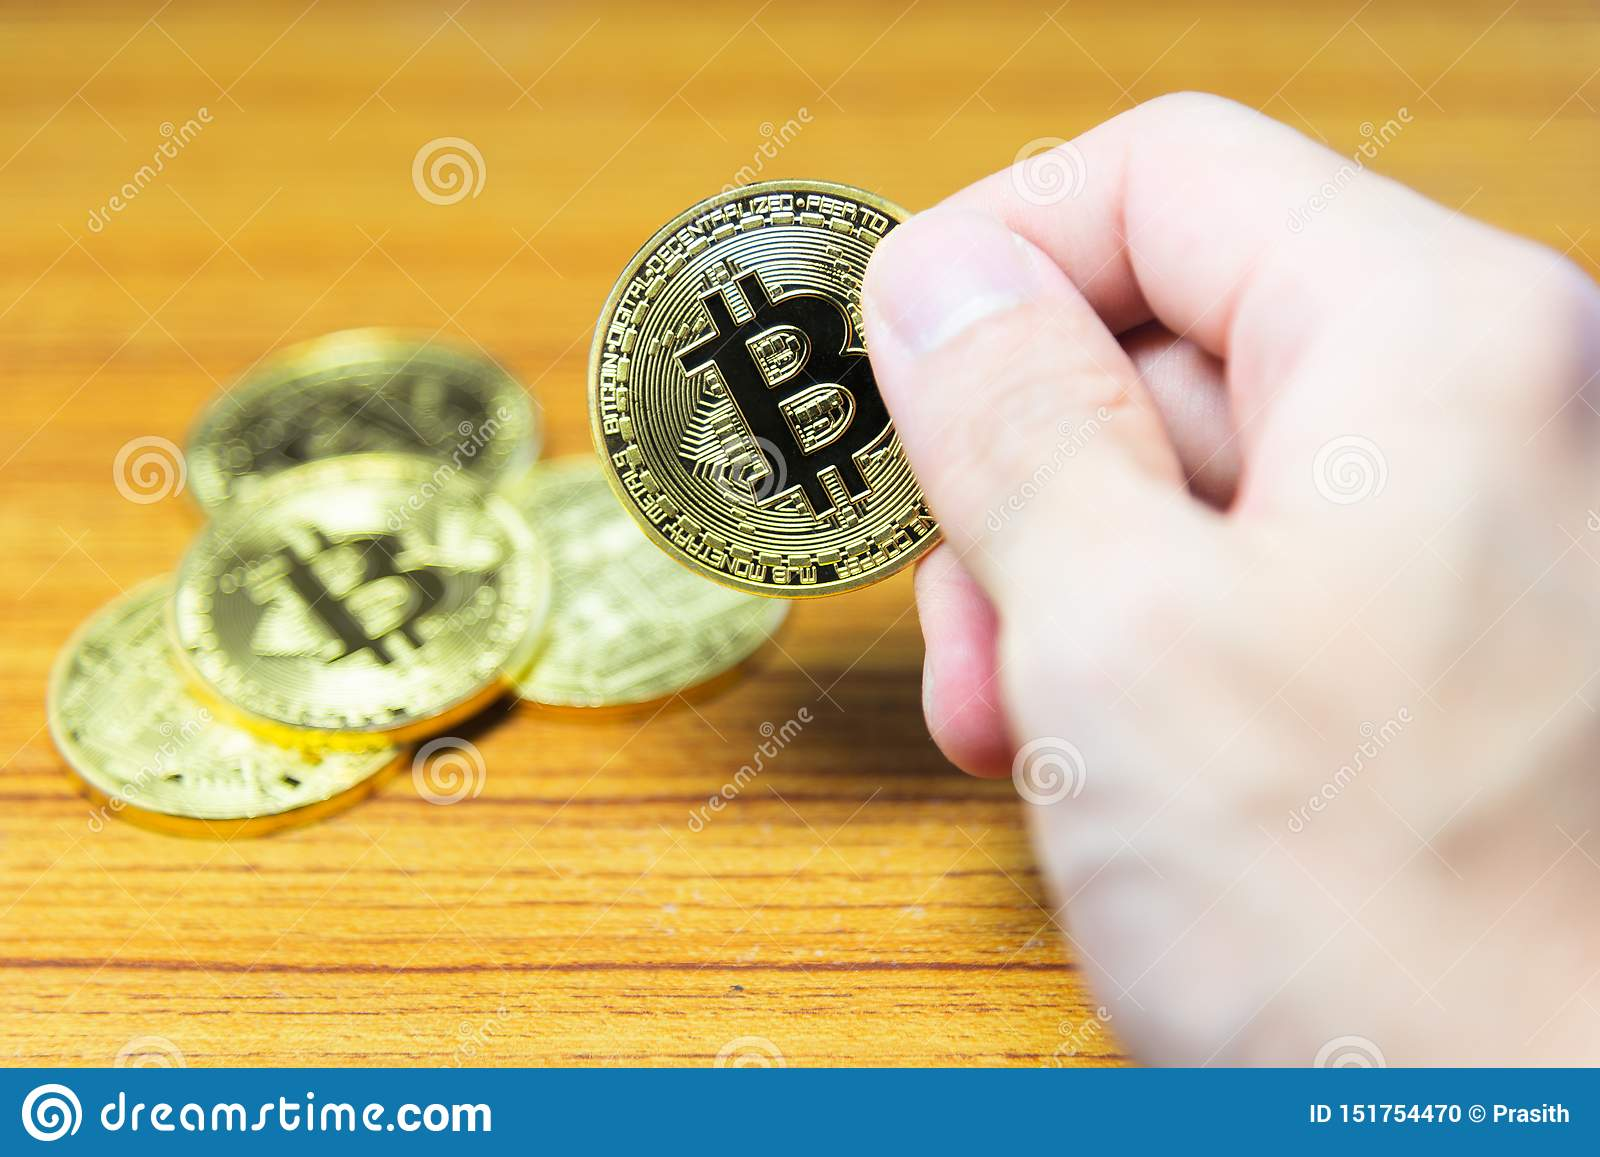 Bitcoin in hand with a blurred bitcoin background.